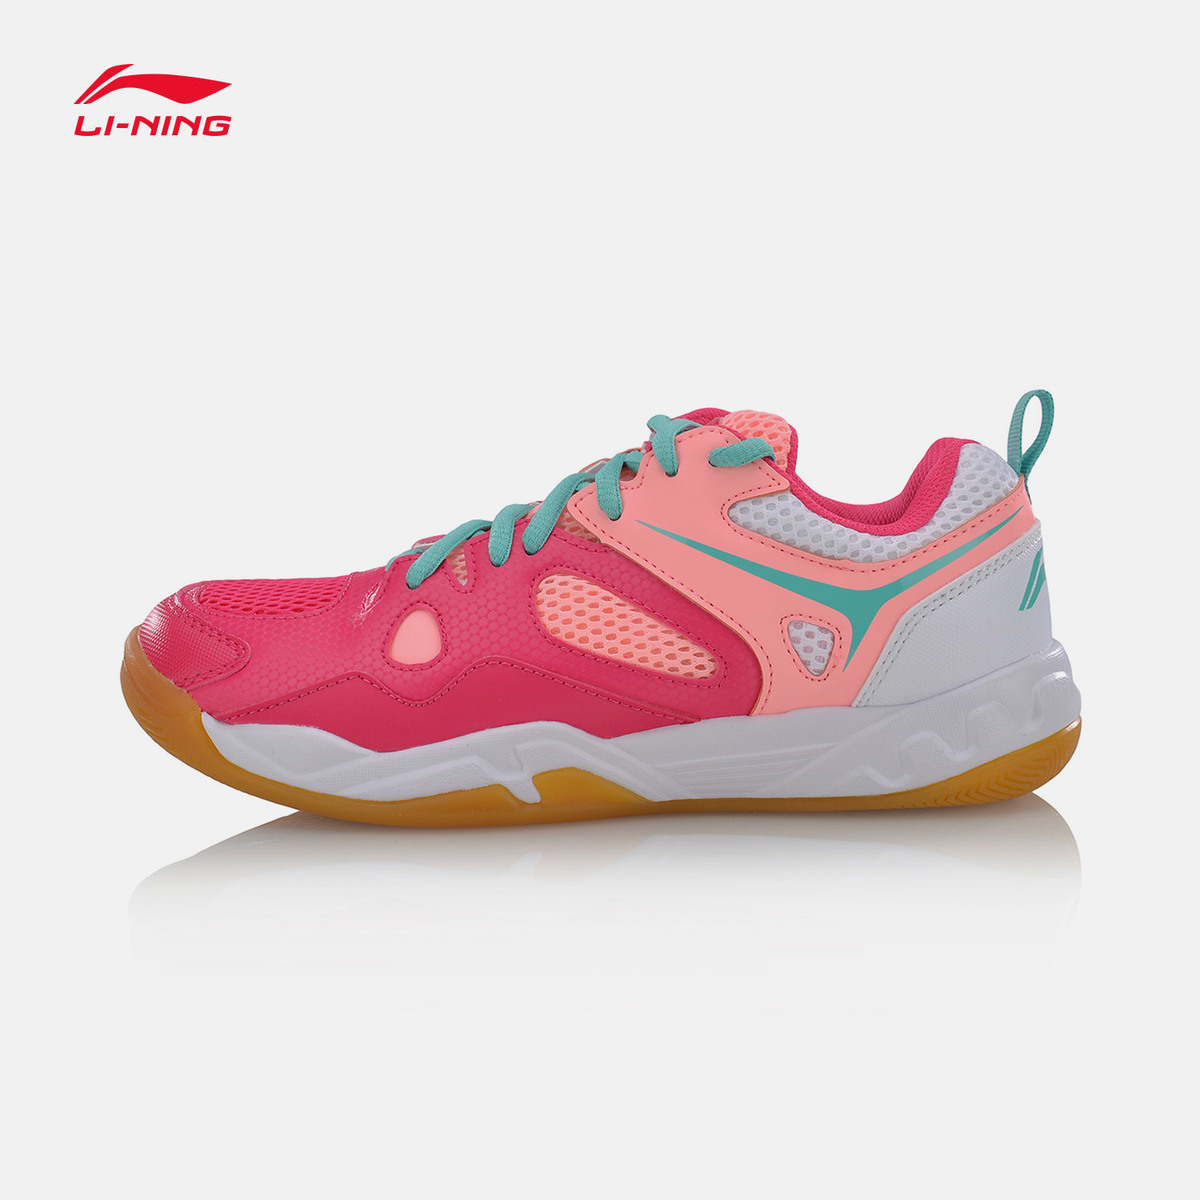 Li-Ning Women Badminton Shoes 2017 NEW Breathable Anti-slip LiNing Ladies Sports Shoes Professional Sneakers AYTM038 L715OLC li ning professional badminton shoe for women cushion breathable anti slippery lining shock absorption athletic sneakers ayal024